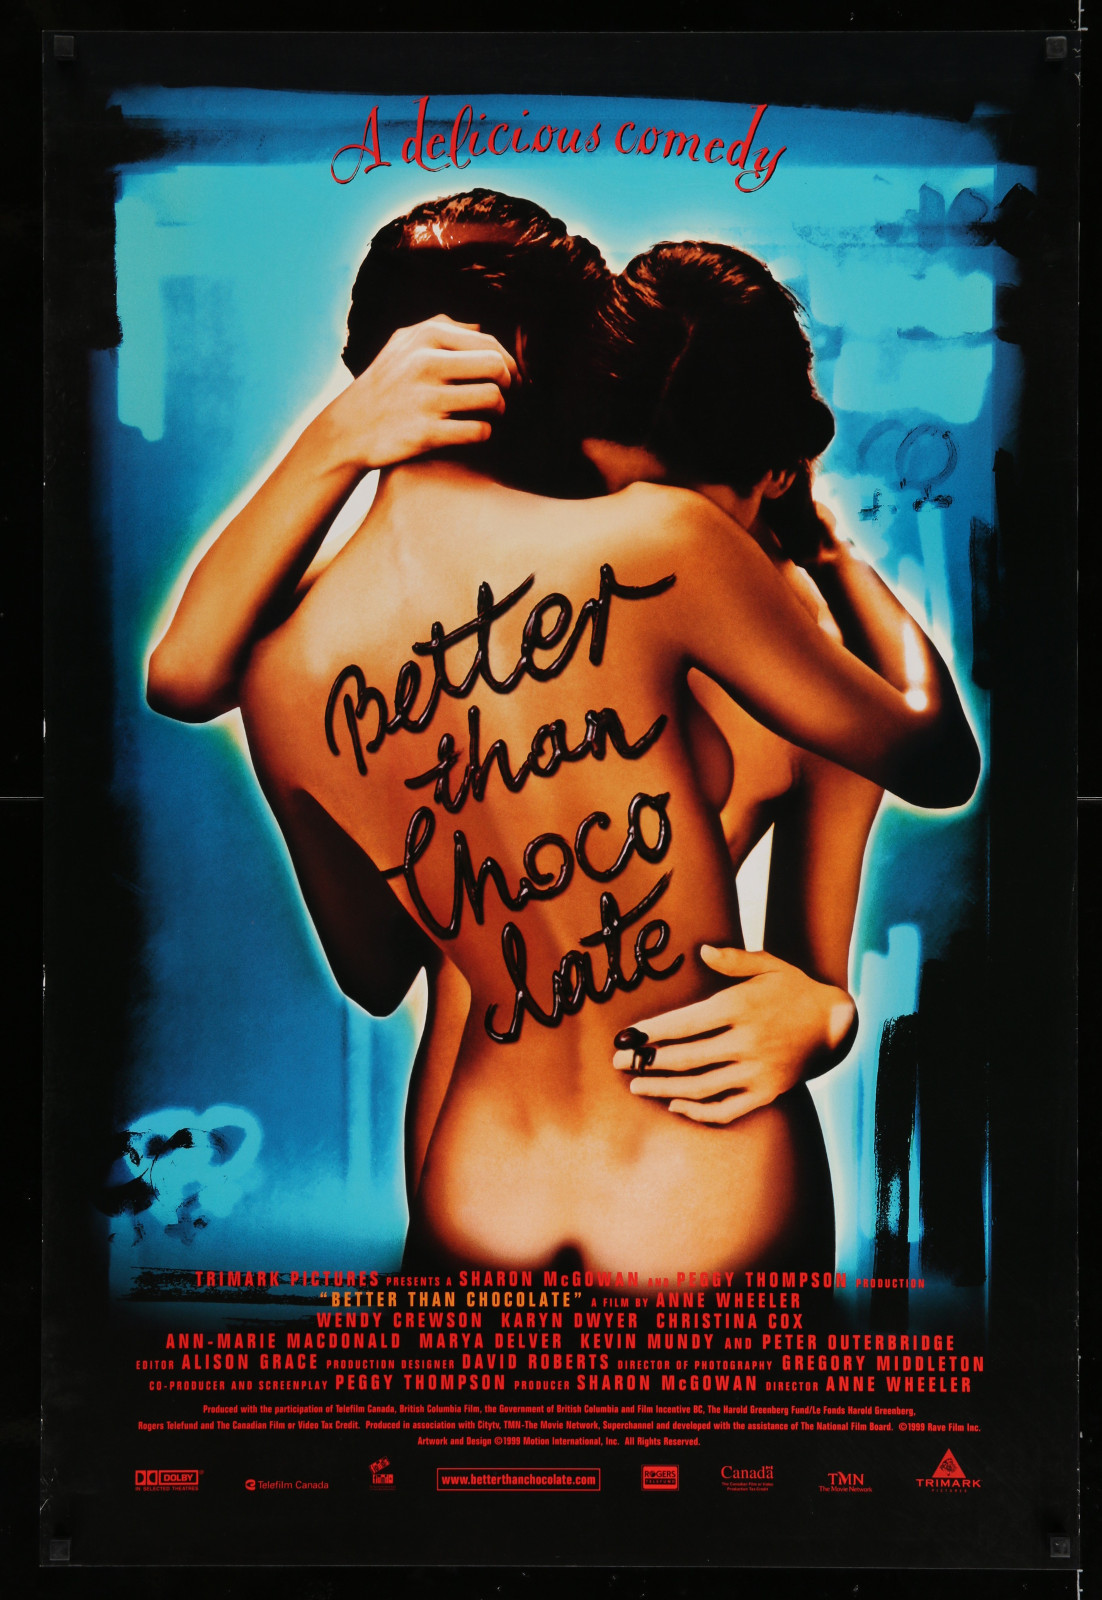 Better Than Chocolate 2A446 A Part Of A Lot 17 Unfolded Mostly Double-Sided 27X40 One-Sheets '90S-00S Great Movie Images!